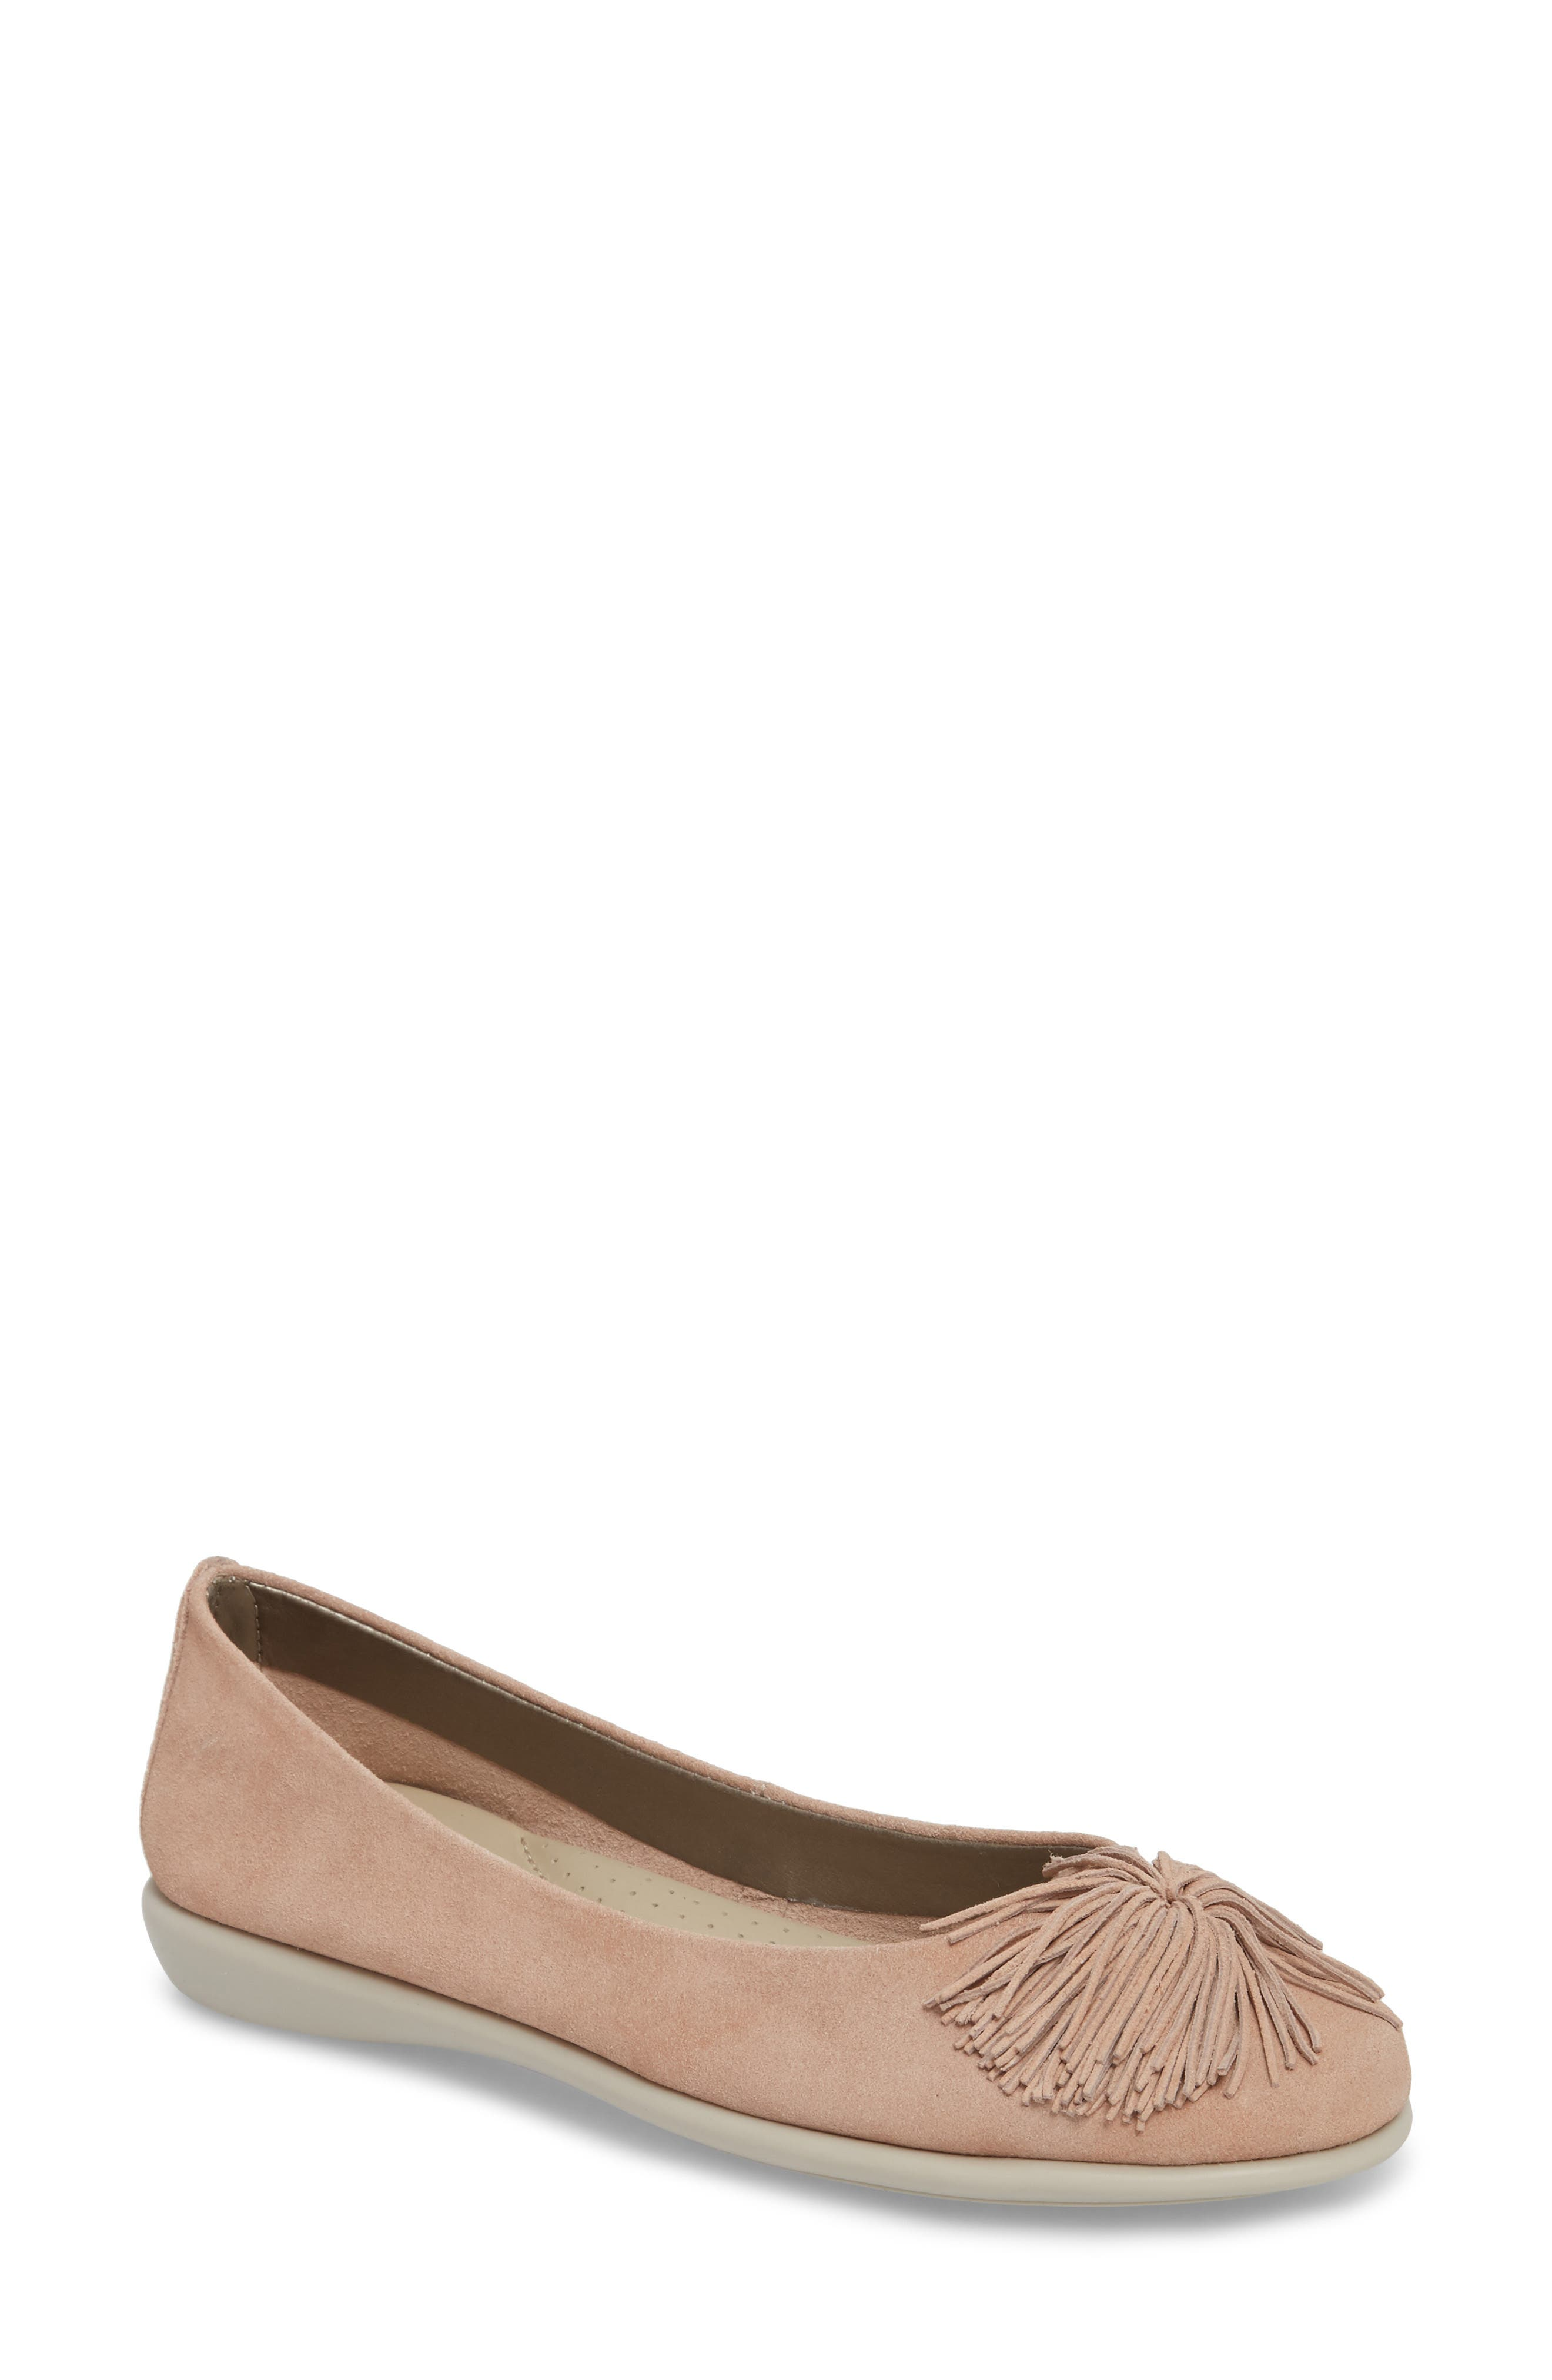 THE FLEXX, Pompom Flat, Main thumbnail 1, color, ROSE GOLD LEATHER